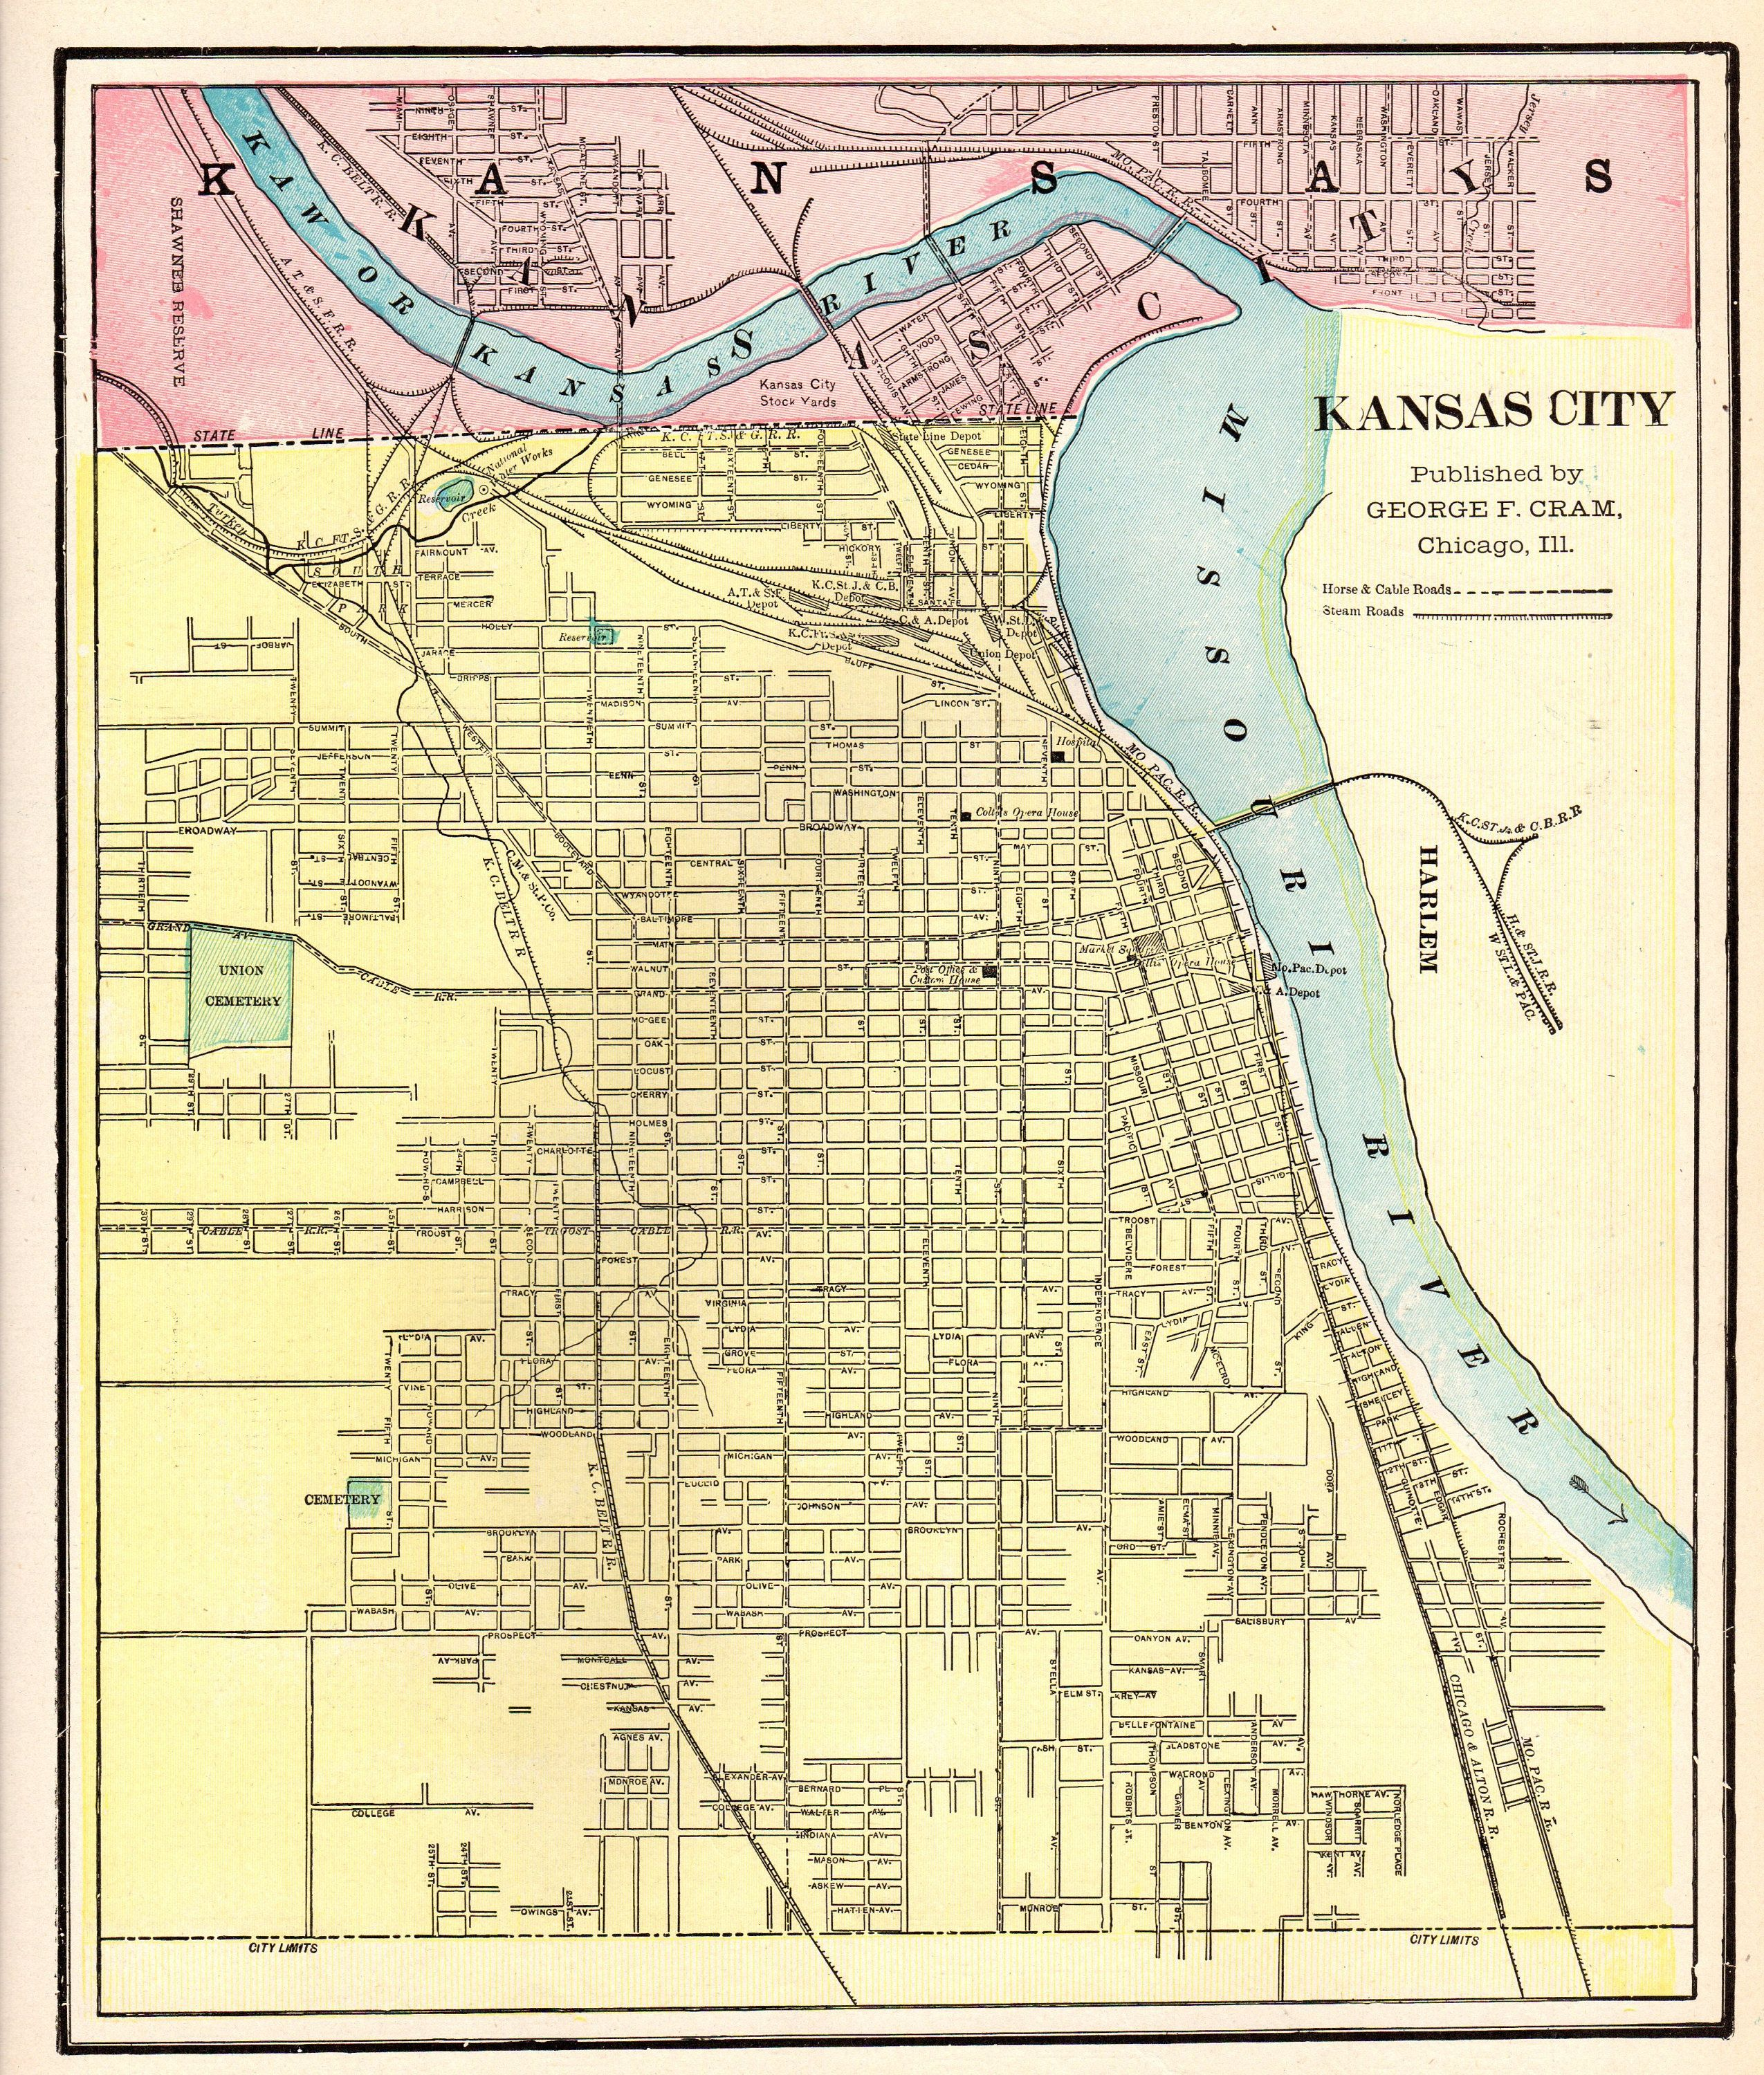 Antique KANSAS CITY Map of Kansas City 1901 Vintage City Map Gallery on overland park soccer complex field map, kansas city airport parking map, kansas city name, kansas city google map, best us cities map, north kansas city street map, kansas city ks zip code map, kansas city zoo map, larned kansas street map, lee's summit city limits map, kansas city transit map, kansas city area map, kansas city schlitterbahn water park map, kansas city on map of usa, kansas city located, great wolf lodge kansas city map, st. louis city map, history kansas railroad map, sports north america cities map, wichita kansas us map,